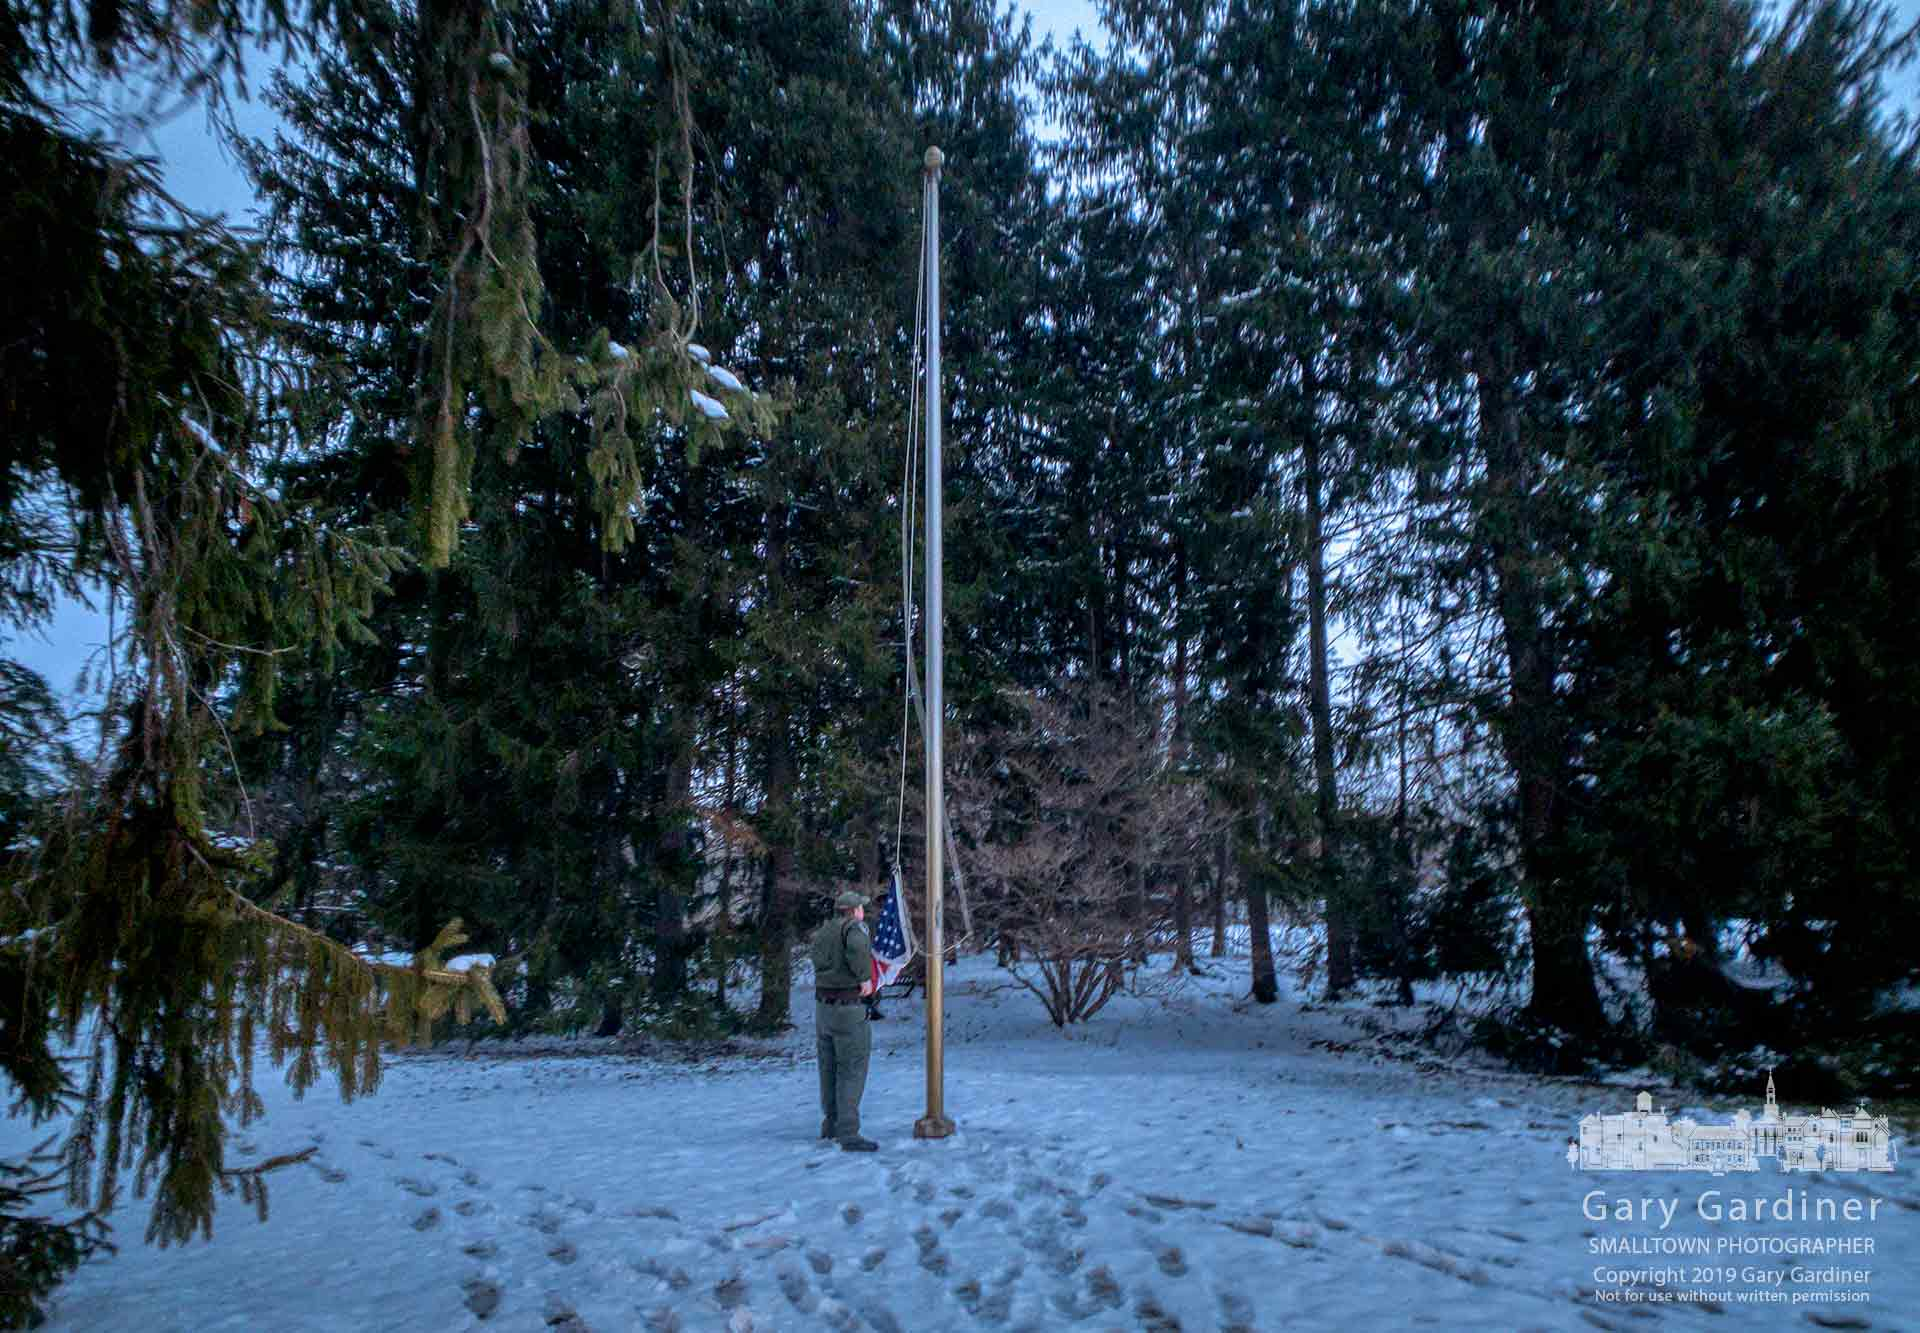 A ranger at Inniswood Metro Gardens lowers the flag at dusk and near the time of the park closing for the day. My Final Photo for Jan. 16, 2019.